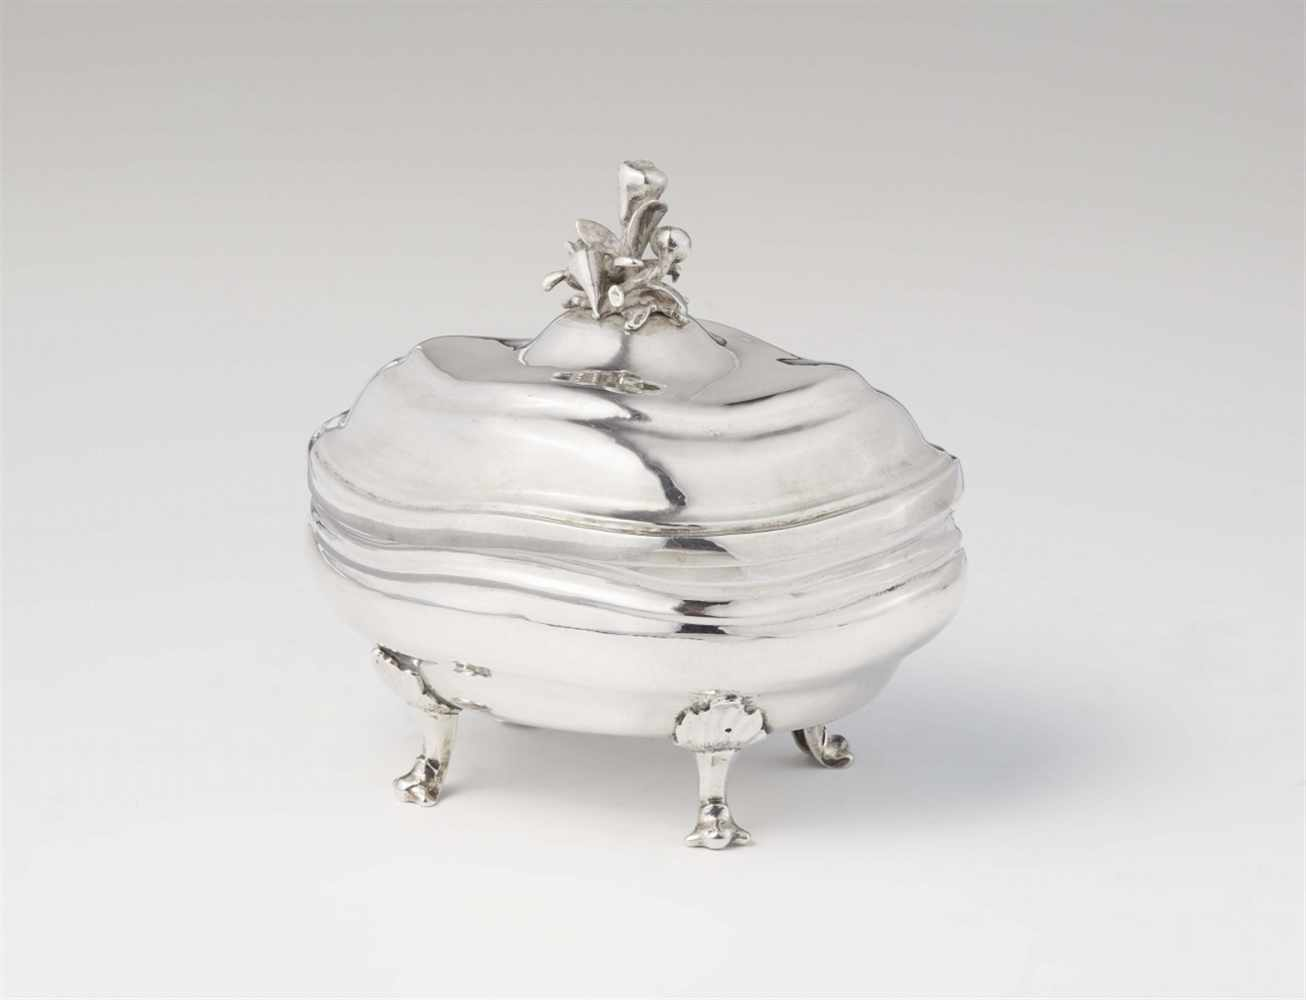 An Augsburg silver sugar boxInterior gilt bombé form box with twist fluting and domed lid with a